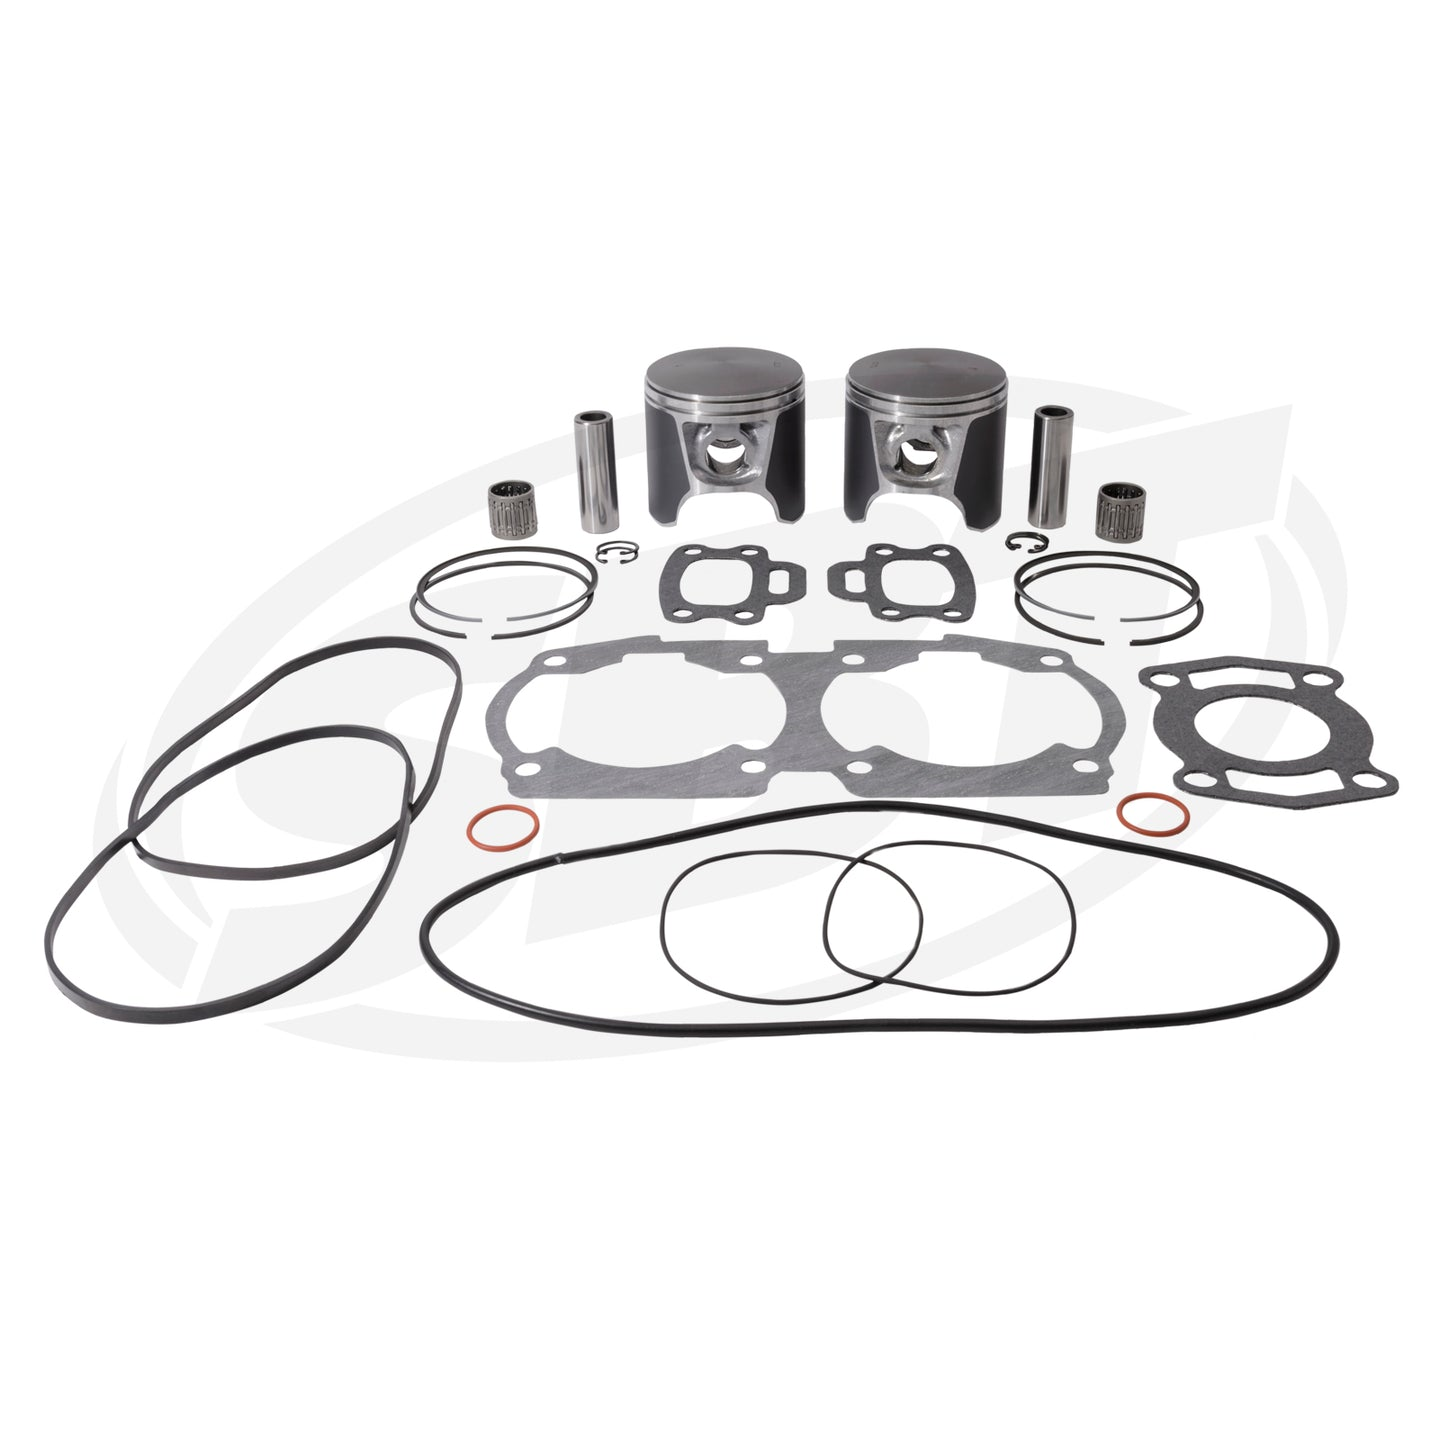 SBT Sea-Doo Top-End Kit 717 /720 XP /SPX /HX /GTI /GSI /GS /SP /GTS 1995 1996 1997 1998 1999 2000 2001